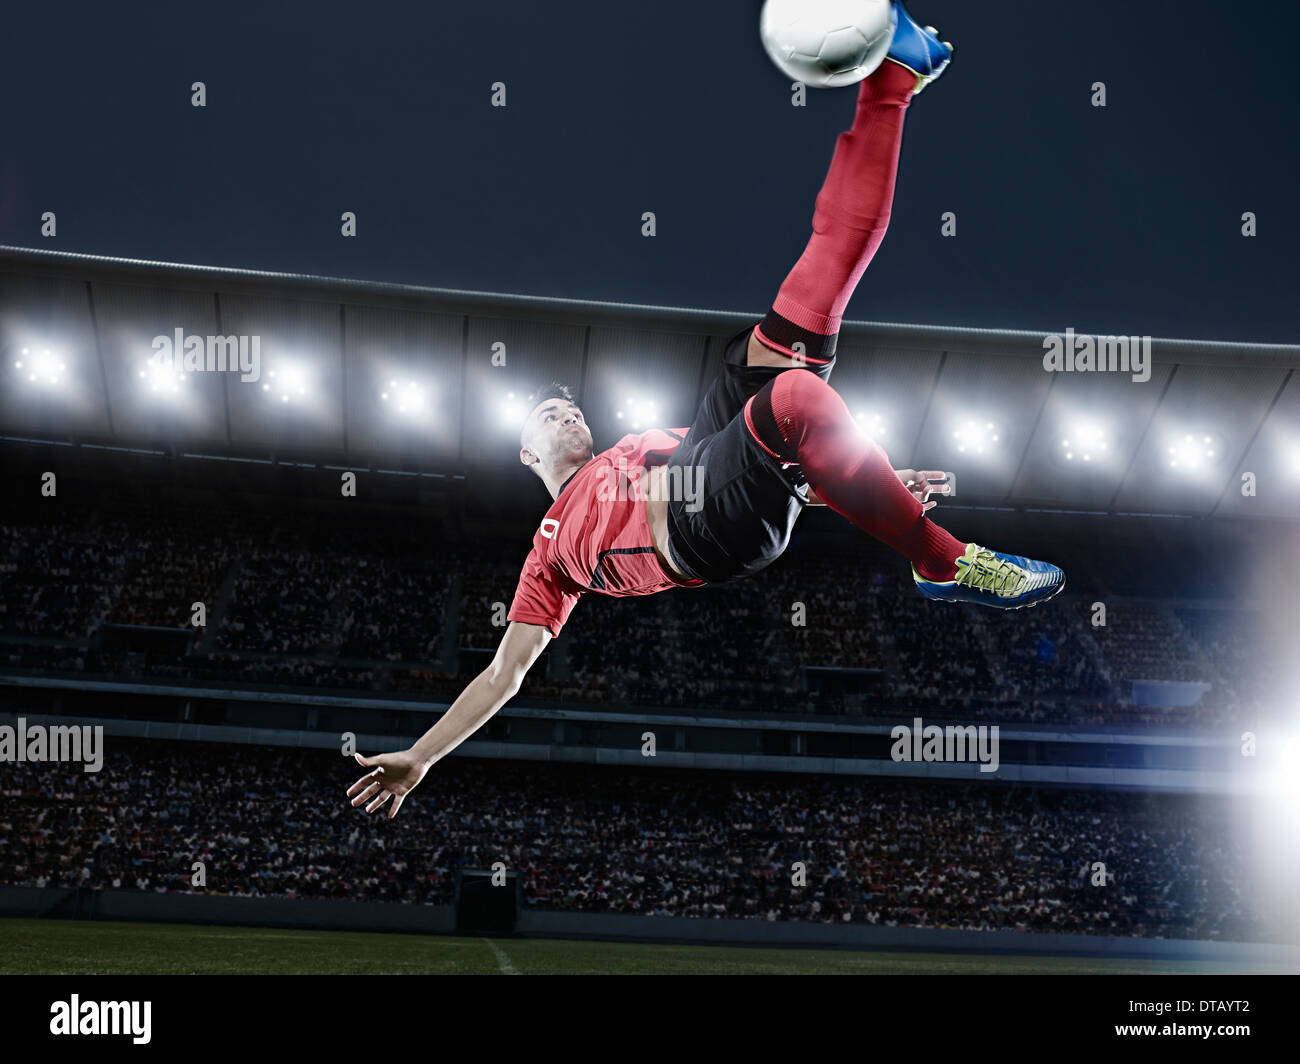 Soccer player kicking ball in mid-air on field - Stock Image